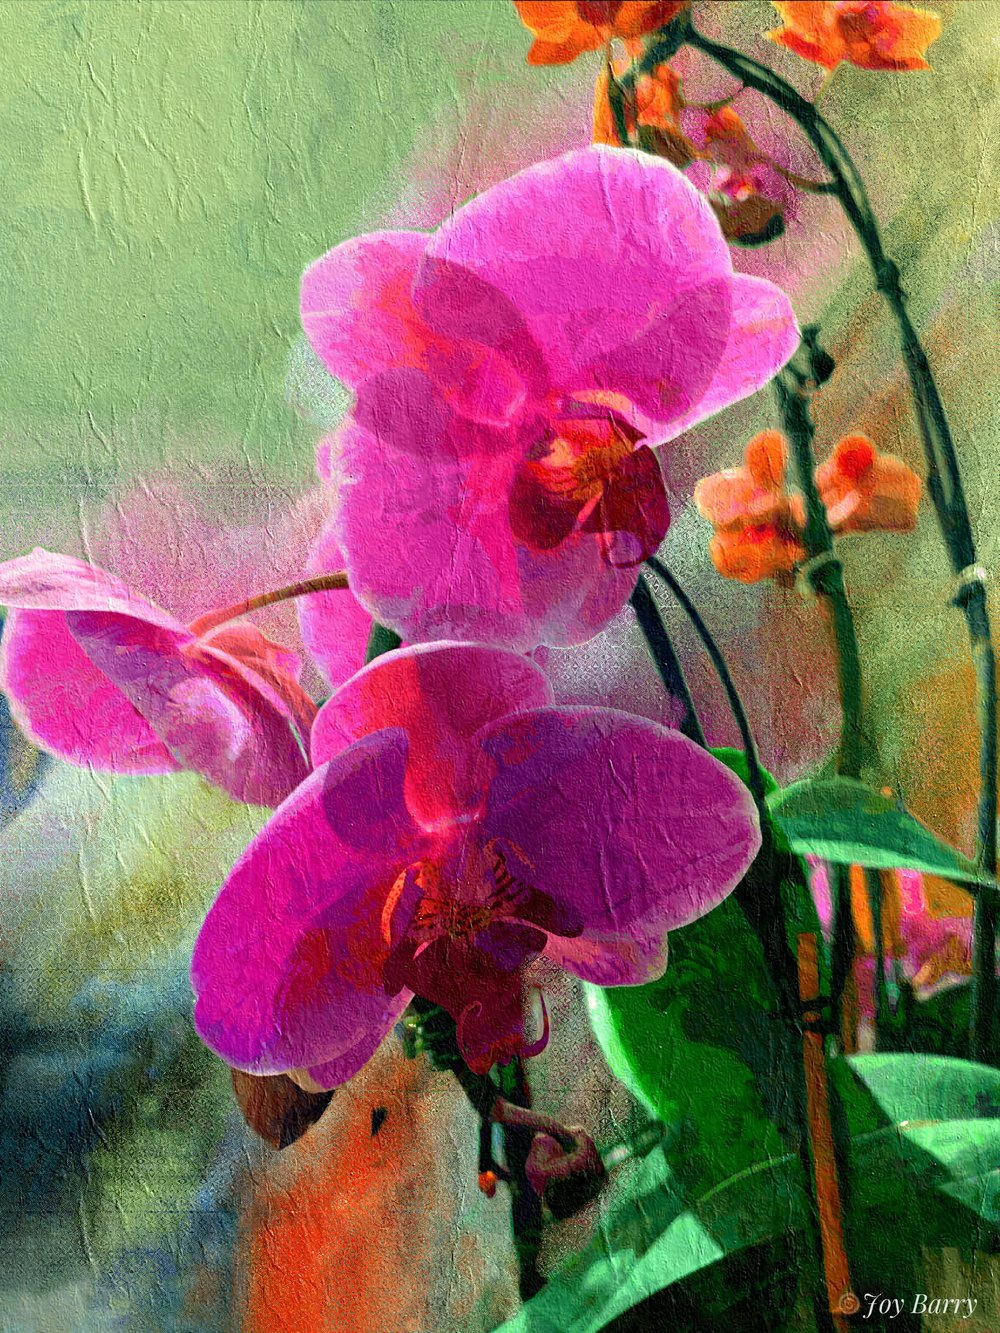 January 19, 2019 - These gorgeous orchids were greeting customers as they entered Whole Foods in Hyannis, Massachusetts.